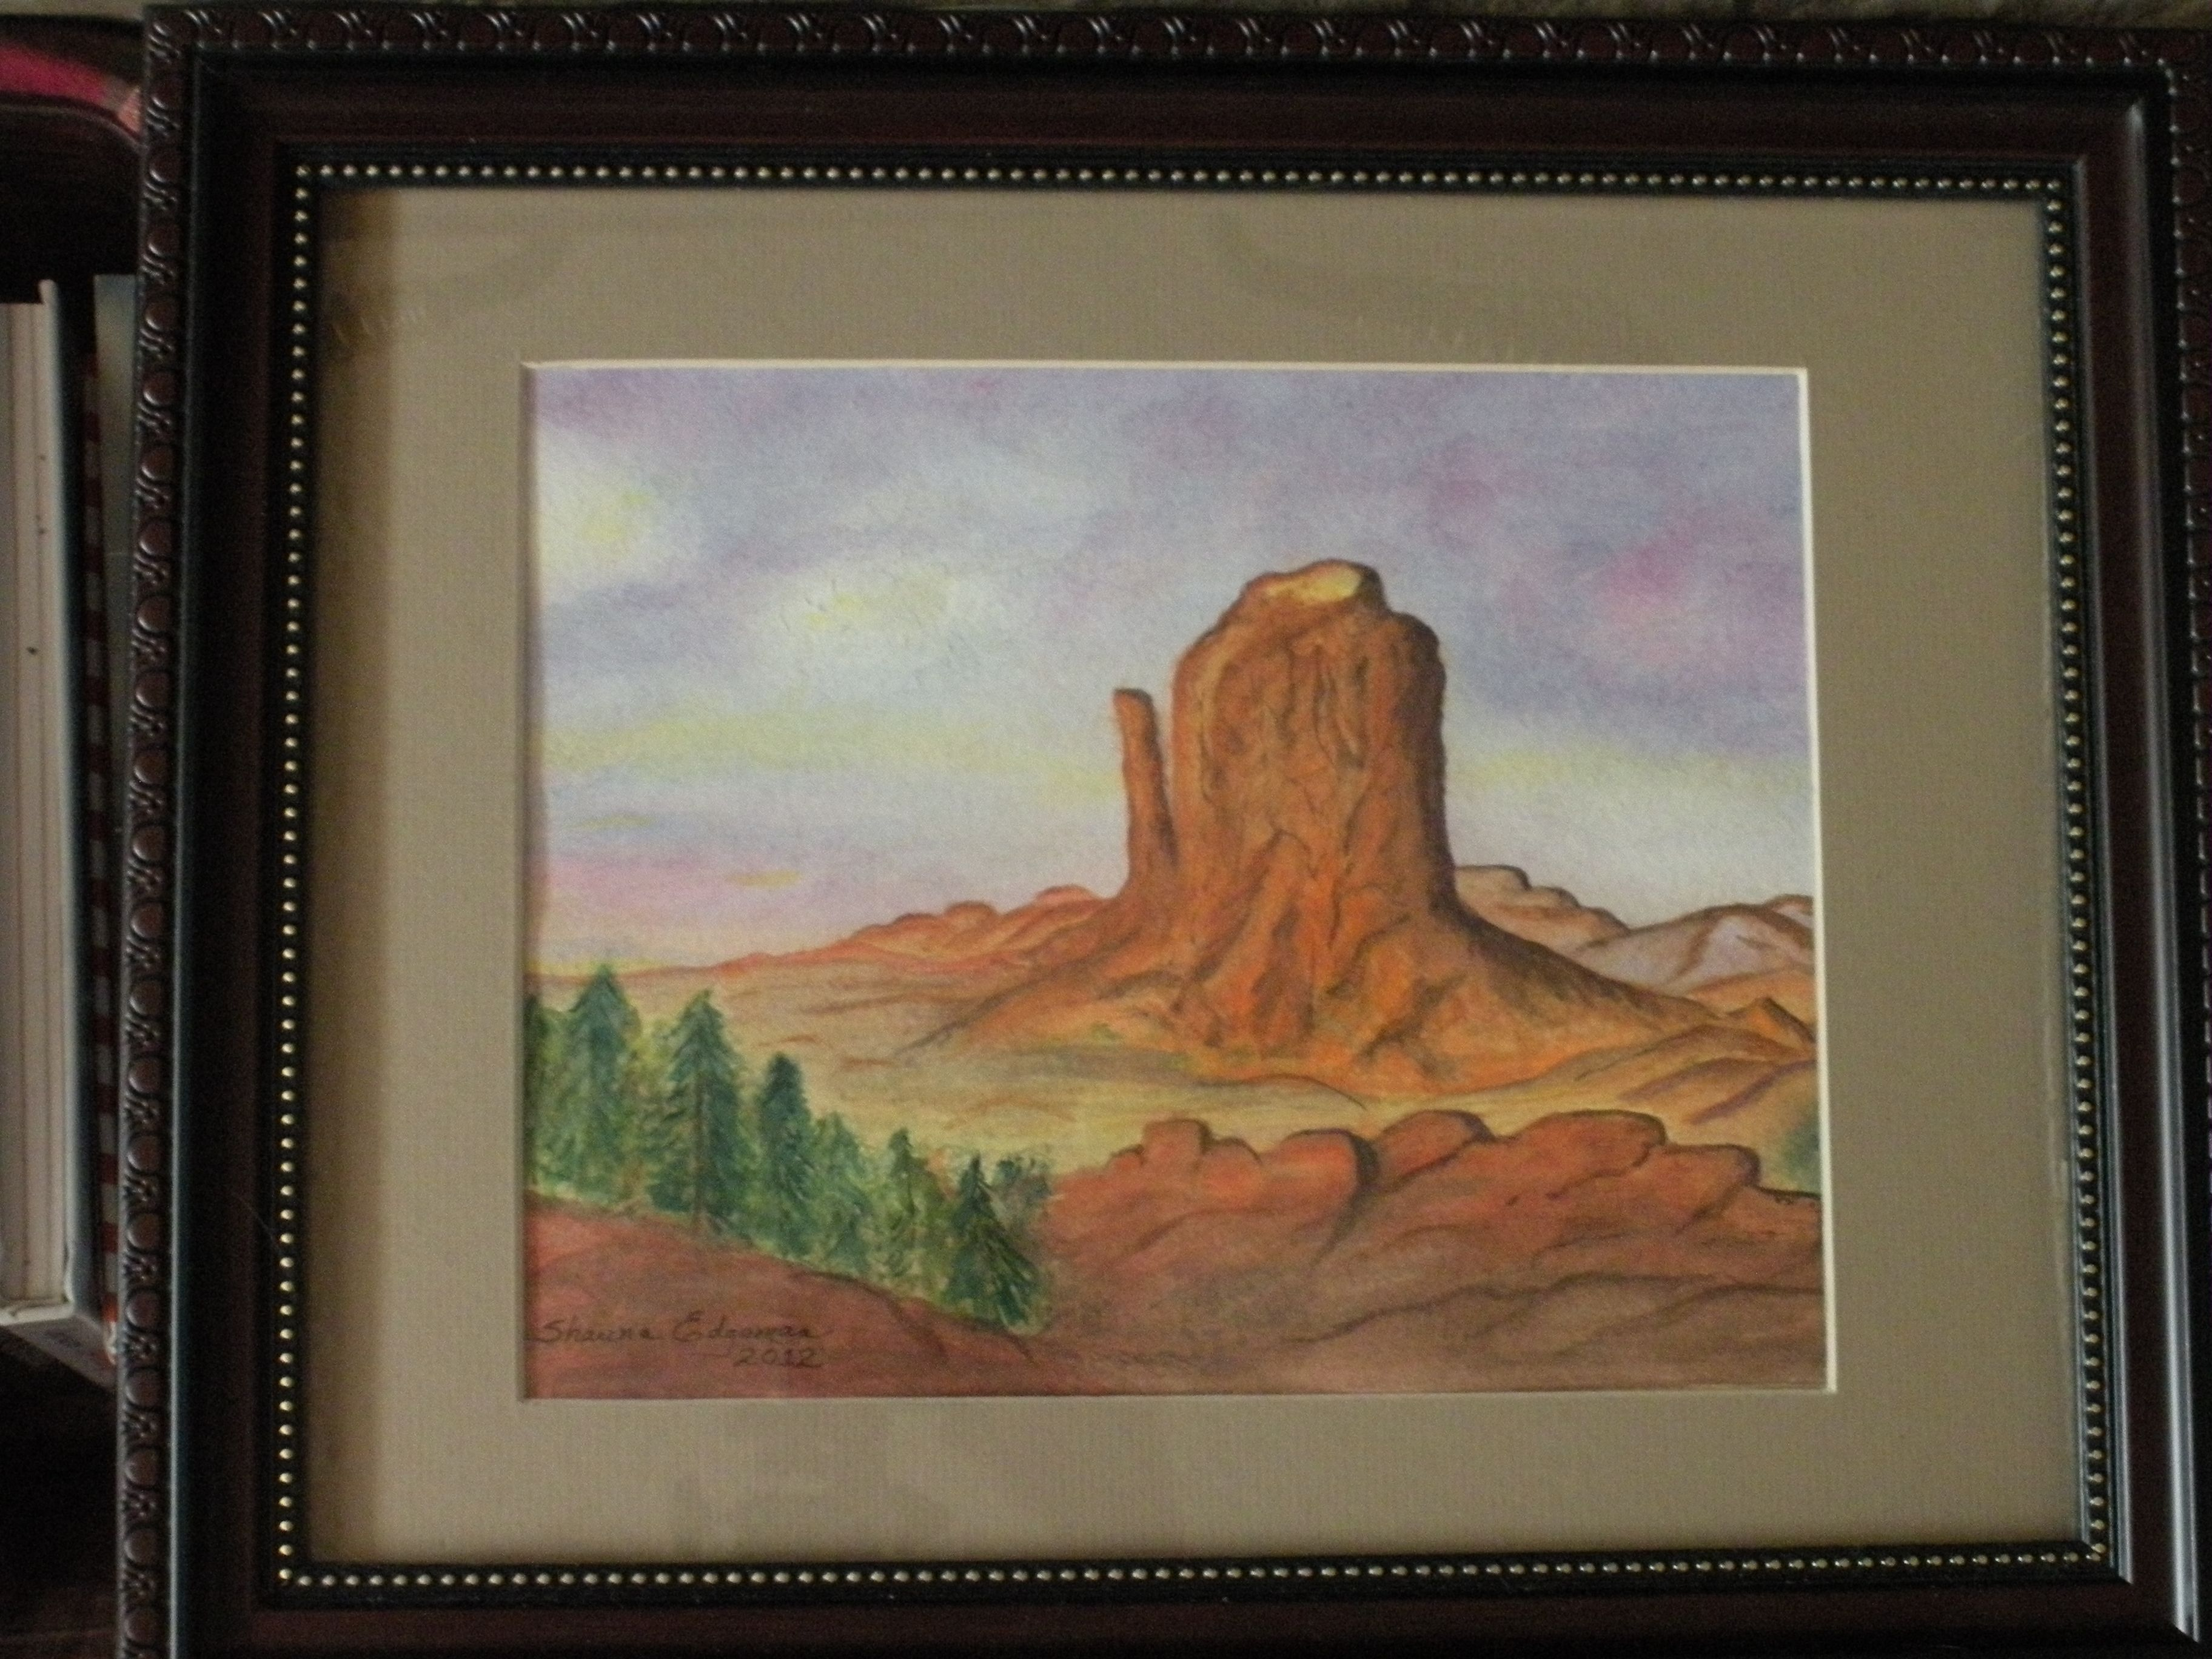 West Mitten, Monument Valley National Park. This was my first attempt at landscaping of any type. Pretty proud of it.